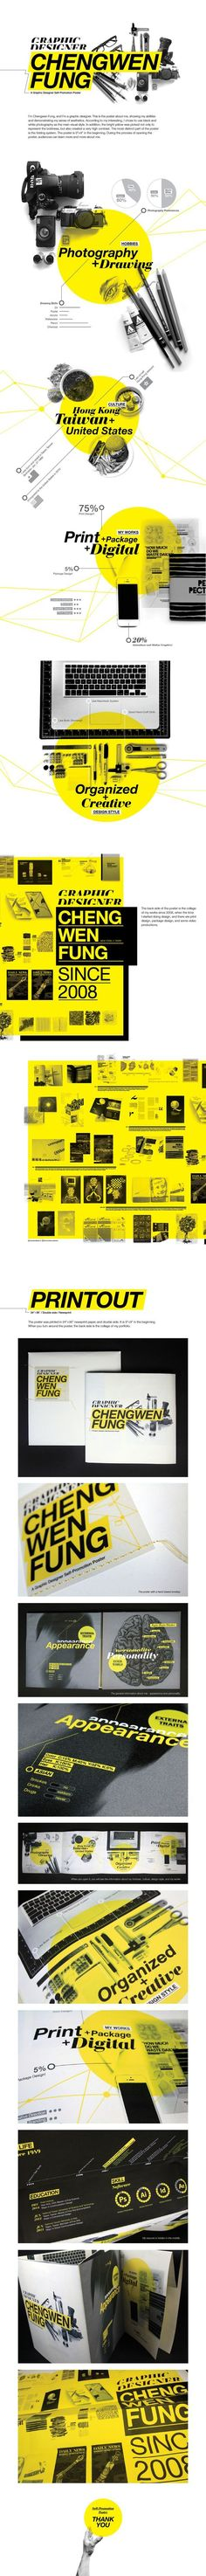 It's a freelancer promo page. Very good design and visual content. Creative designer - Chengwen Fung.